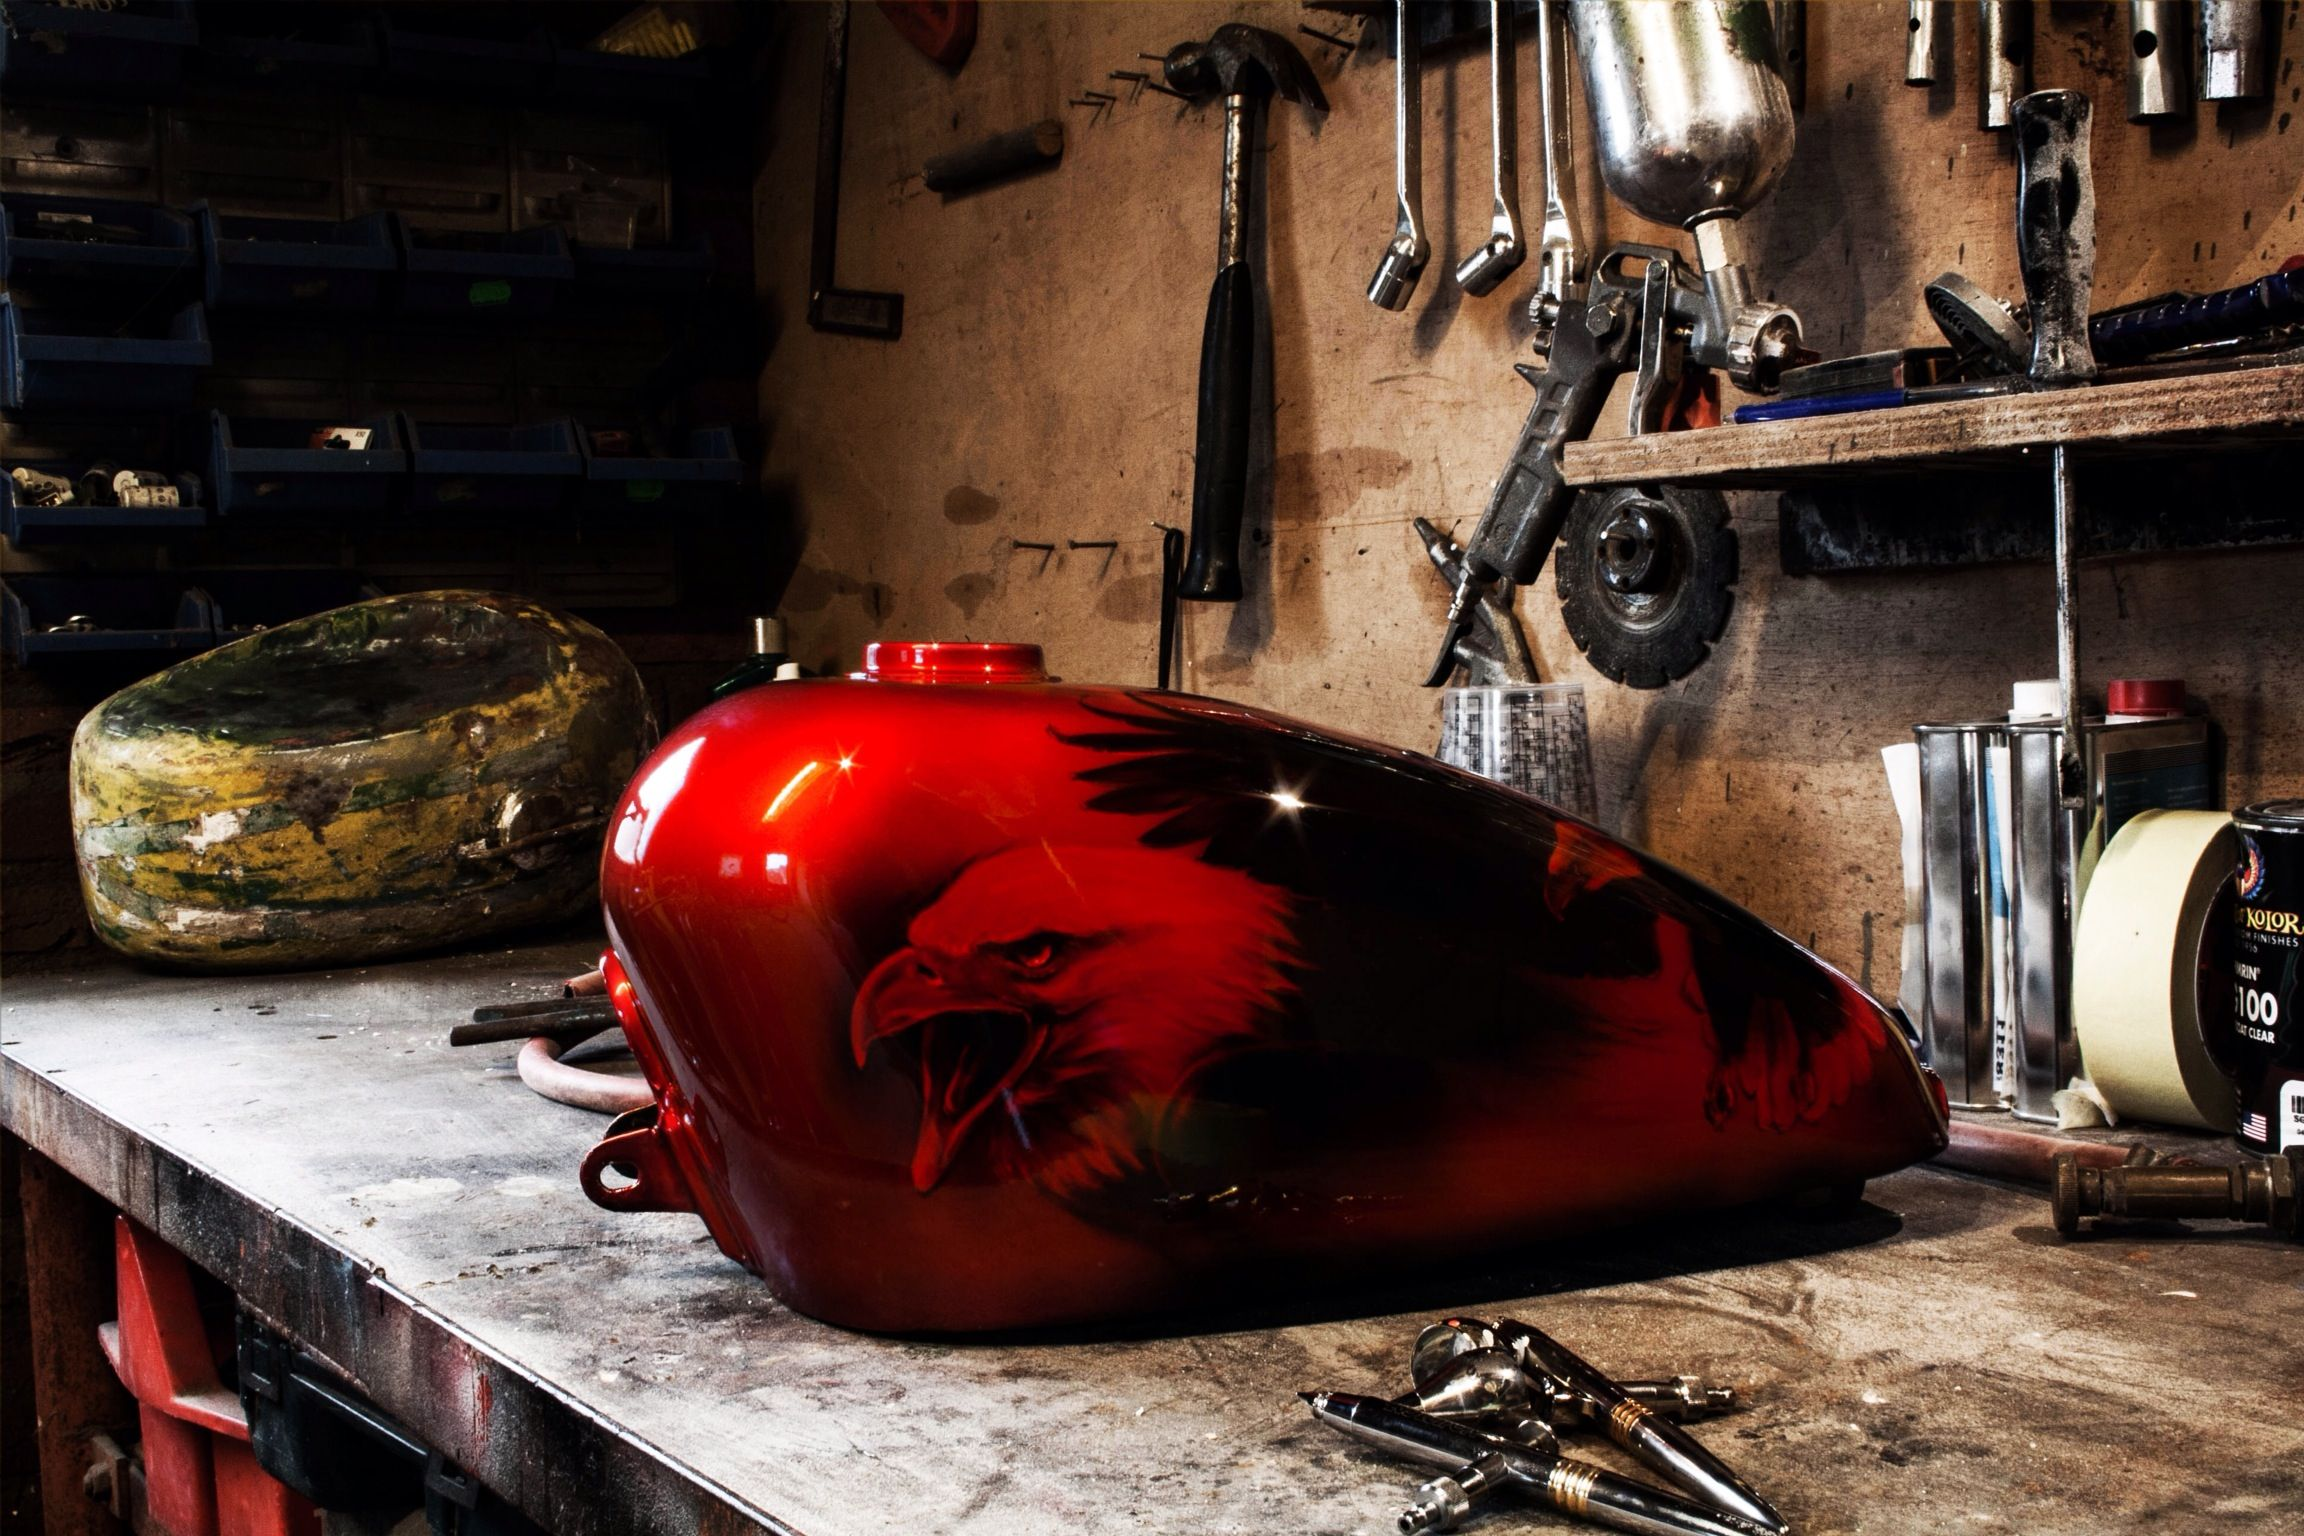 2012 - An harley davidson sportster tank i did for myself, it will only be used as a display piece.. The airbrush and the red kandy are all house of kolor paints.